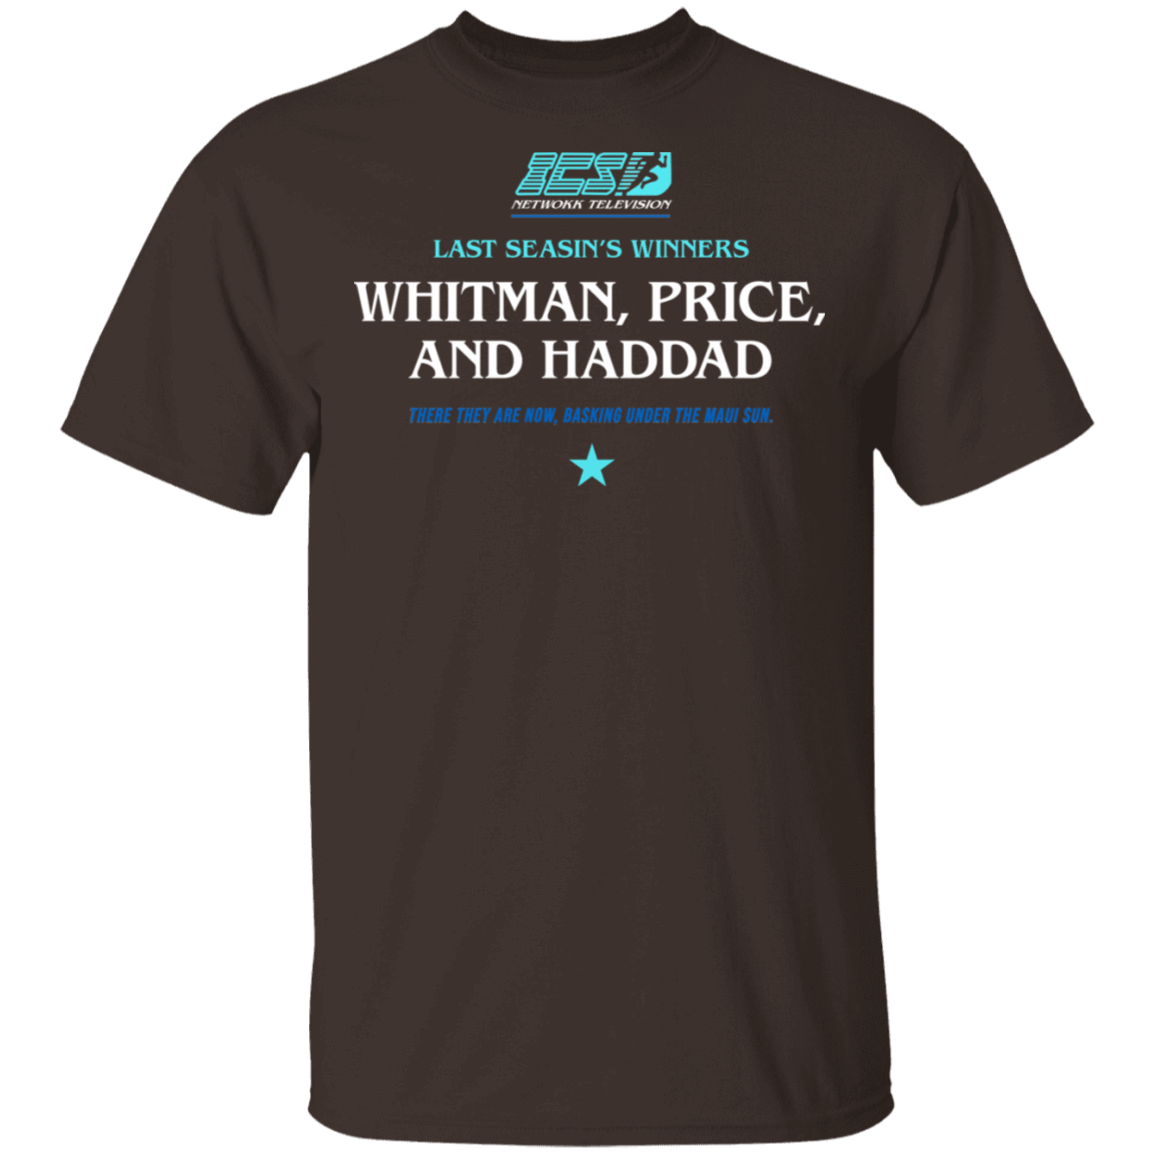 Running Man Whitman, Price, and Haddad T-Shirts, Hoodies, Tank 22-2283-79715838-12087 - Tee Ript